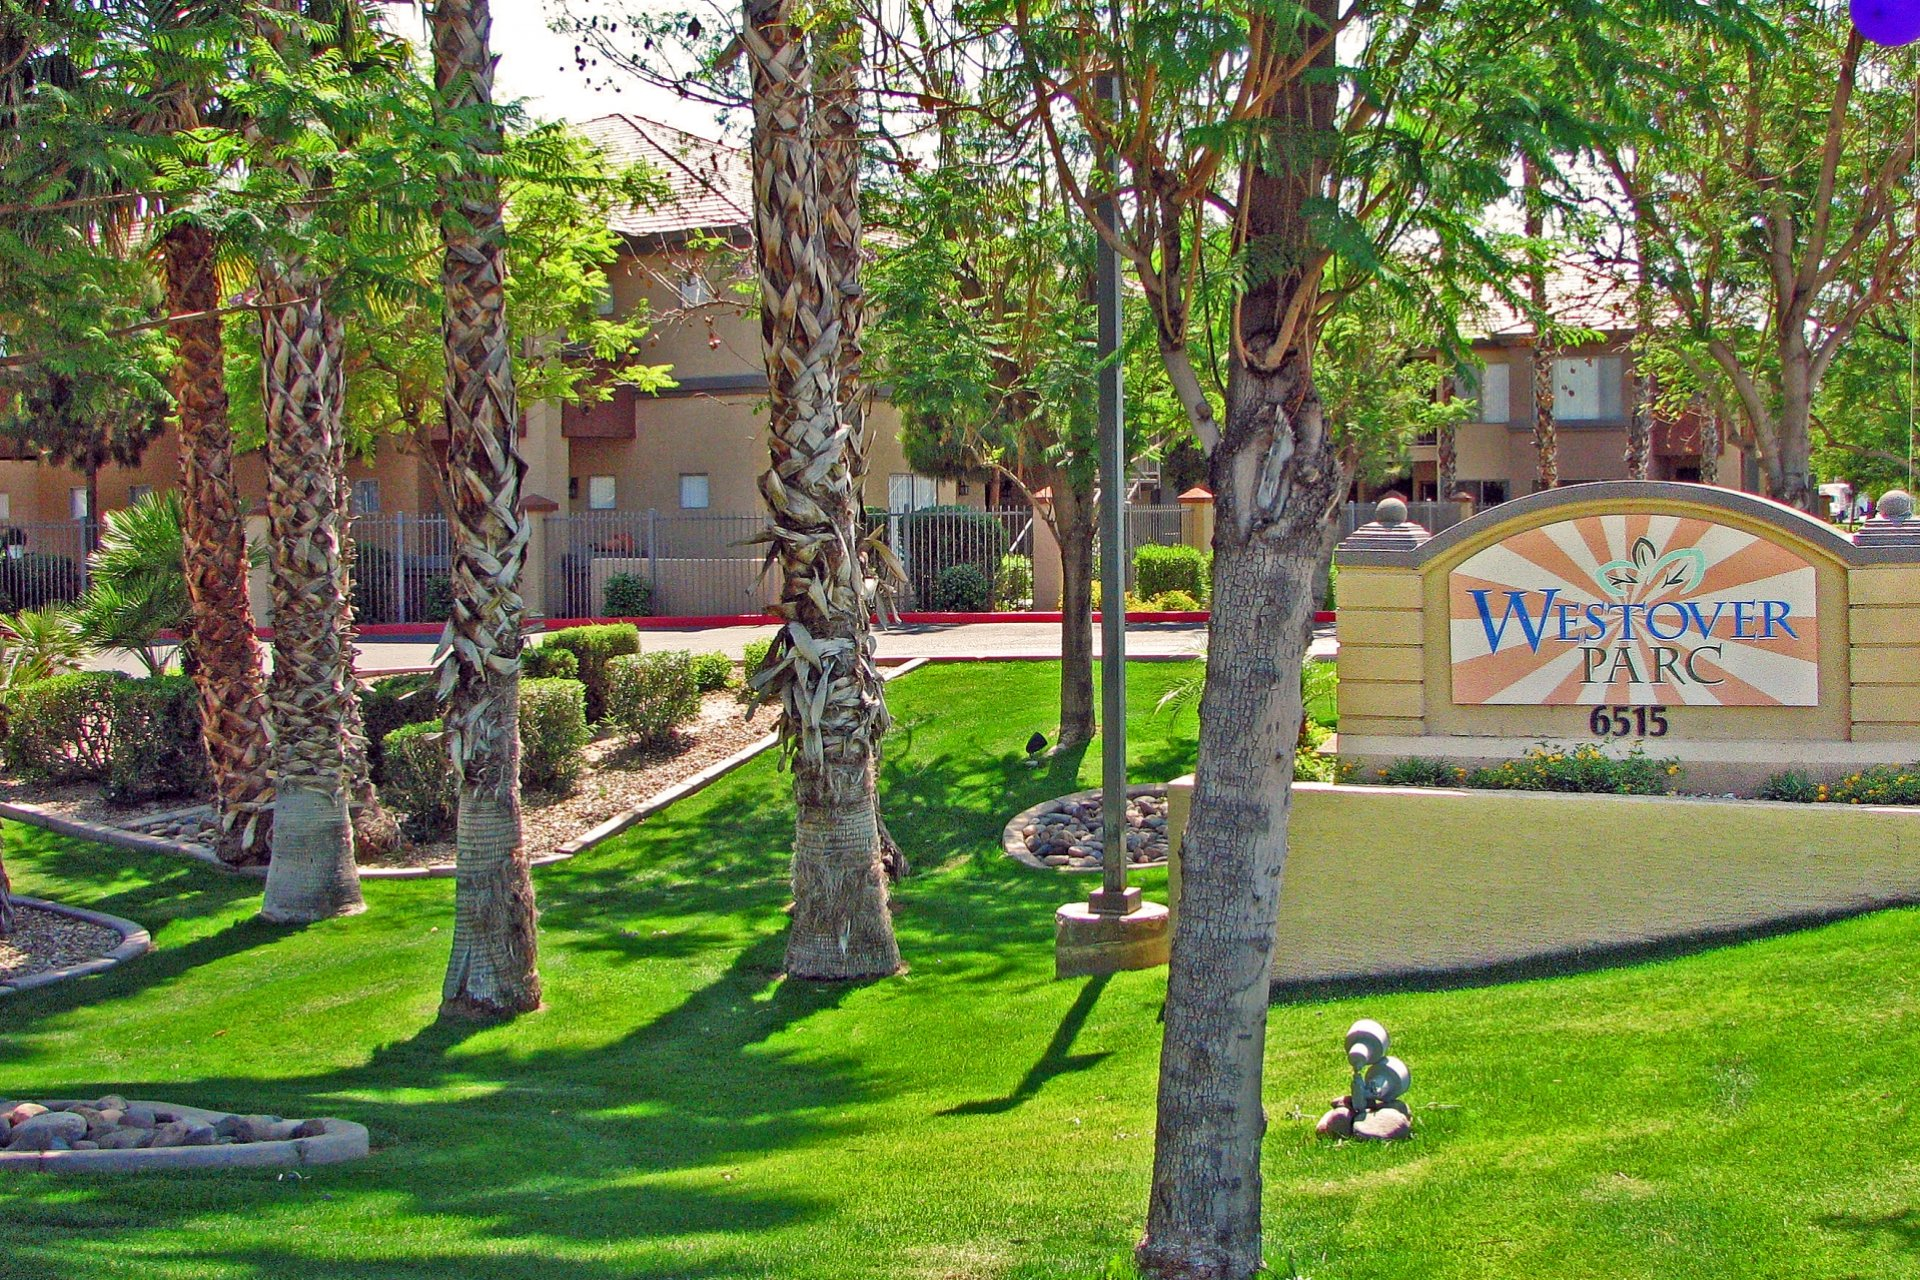 Westover Parc Apartments Phoenix, AZ signage and landscaping